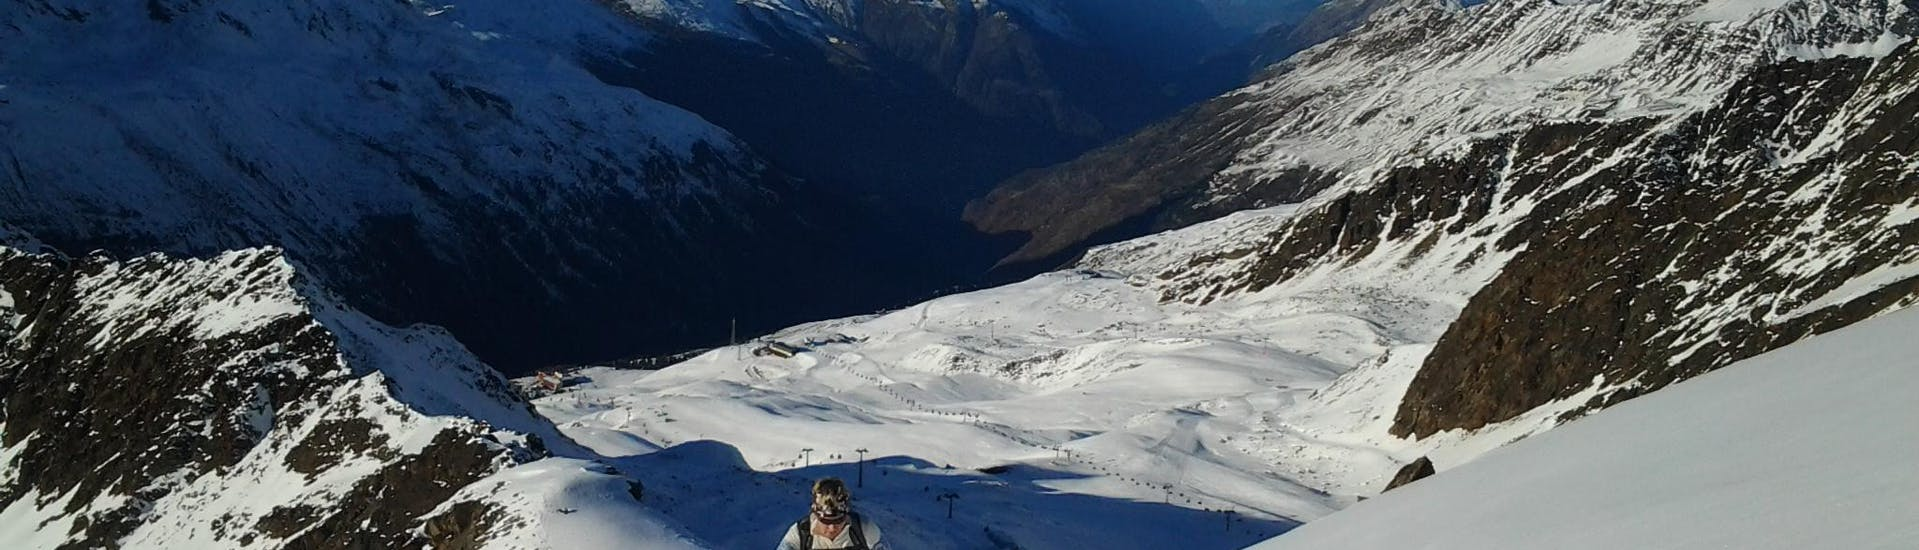 Ski Touring Private - All Levels & Ages with Stefan Gstrein - Hero image